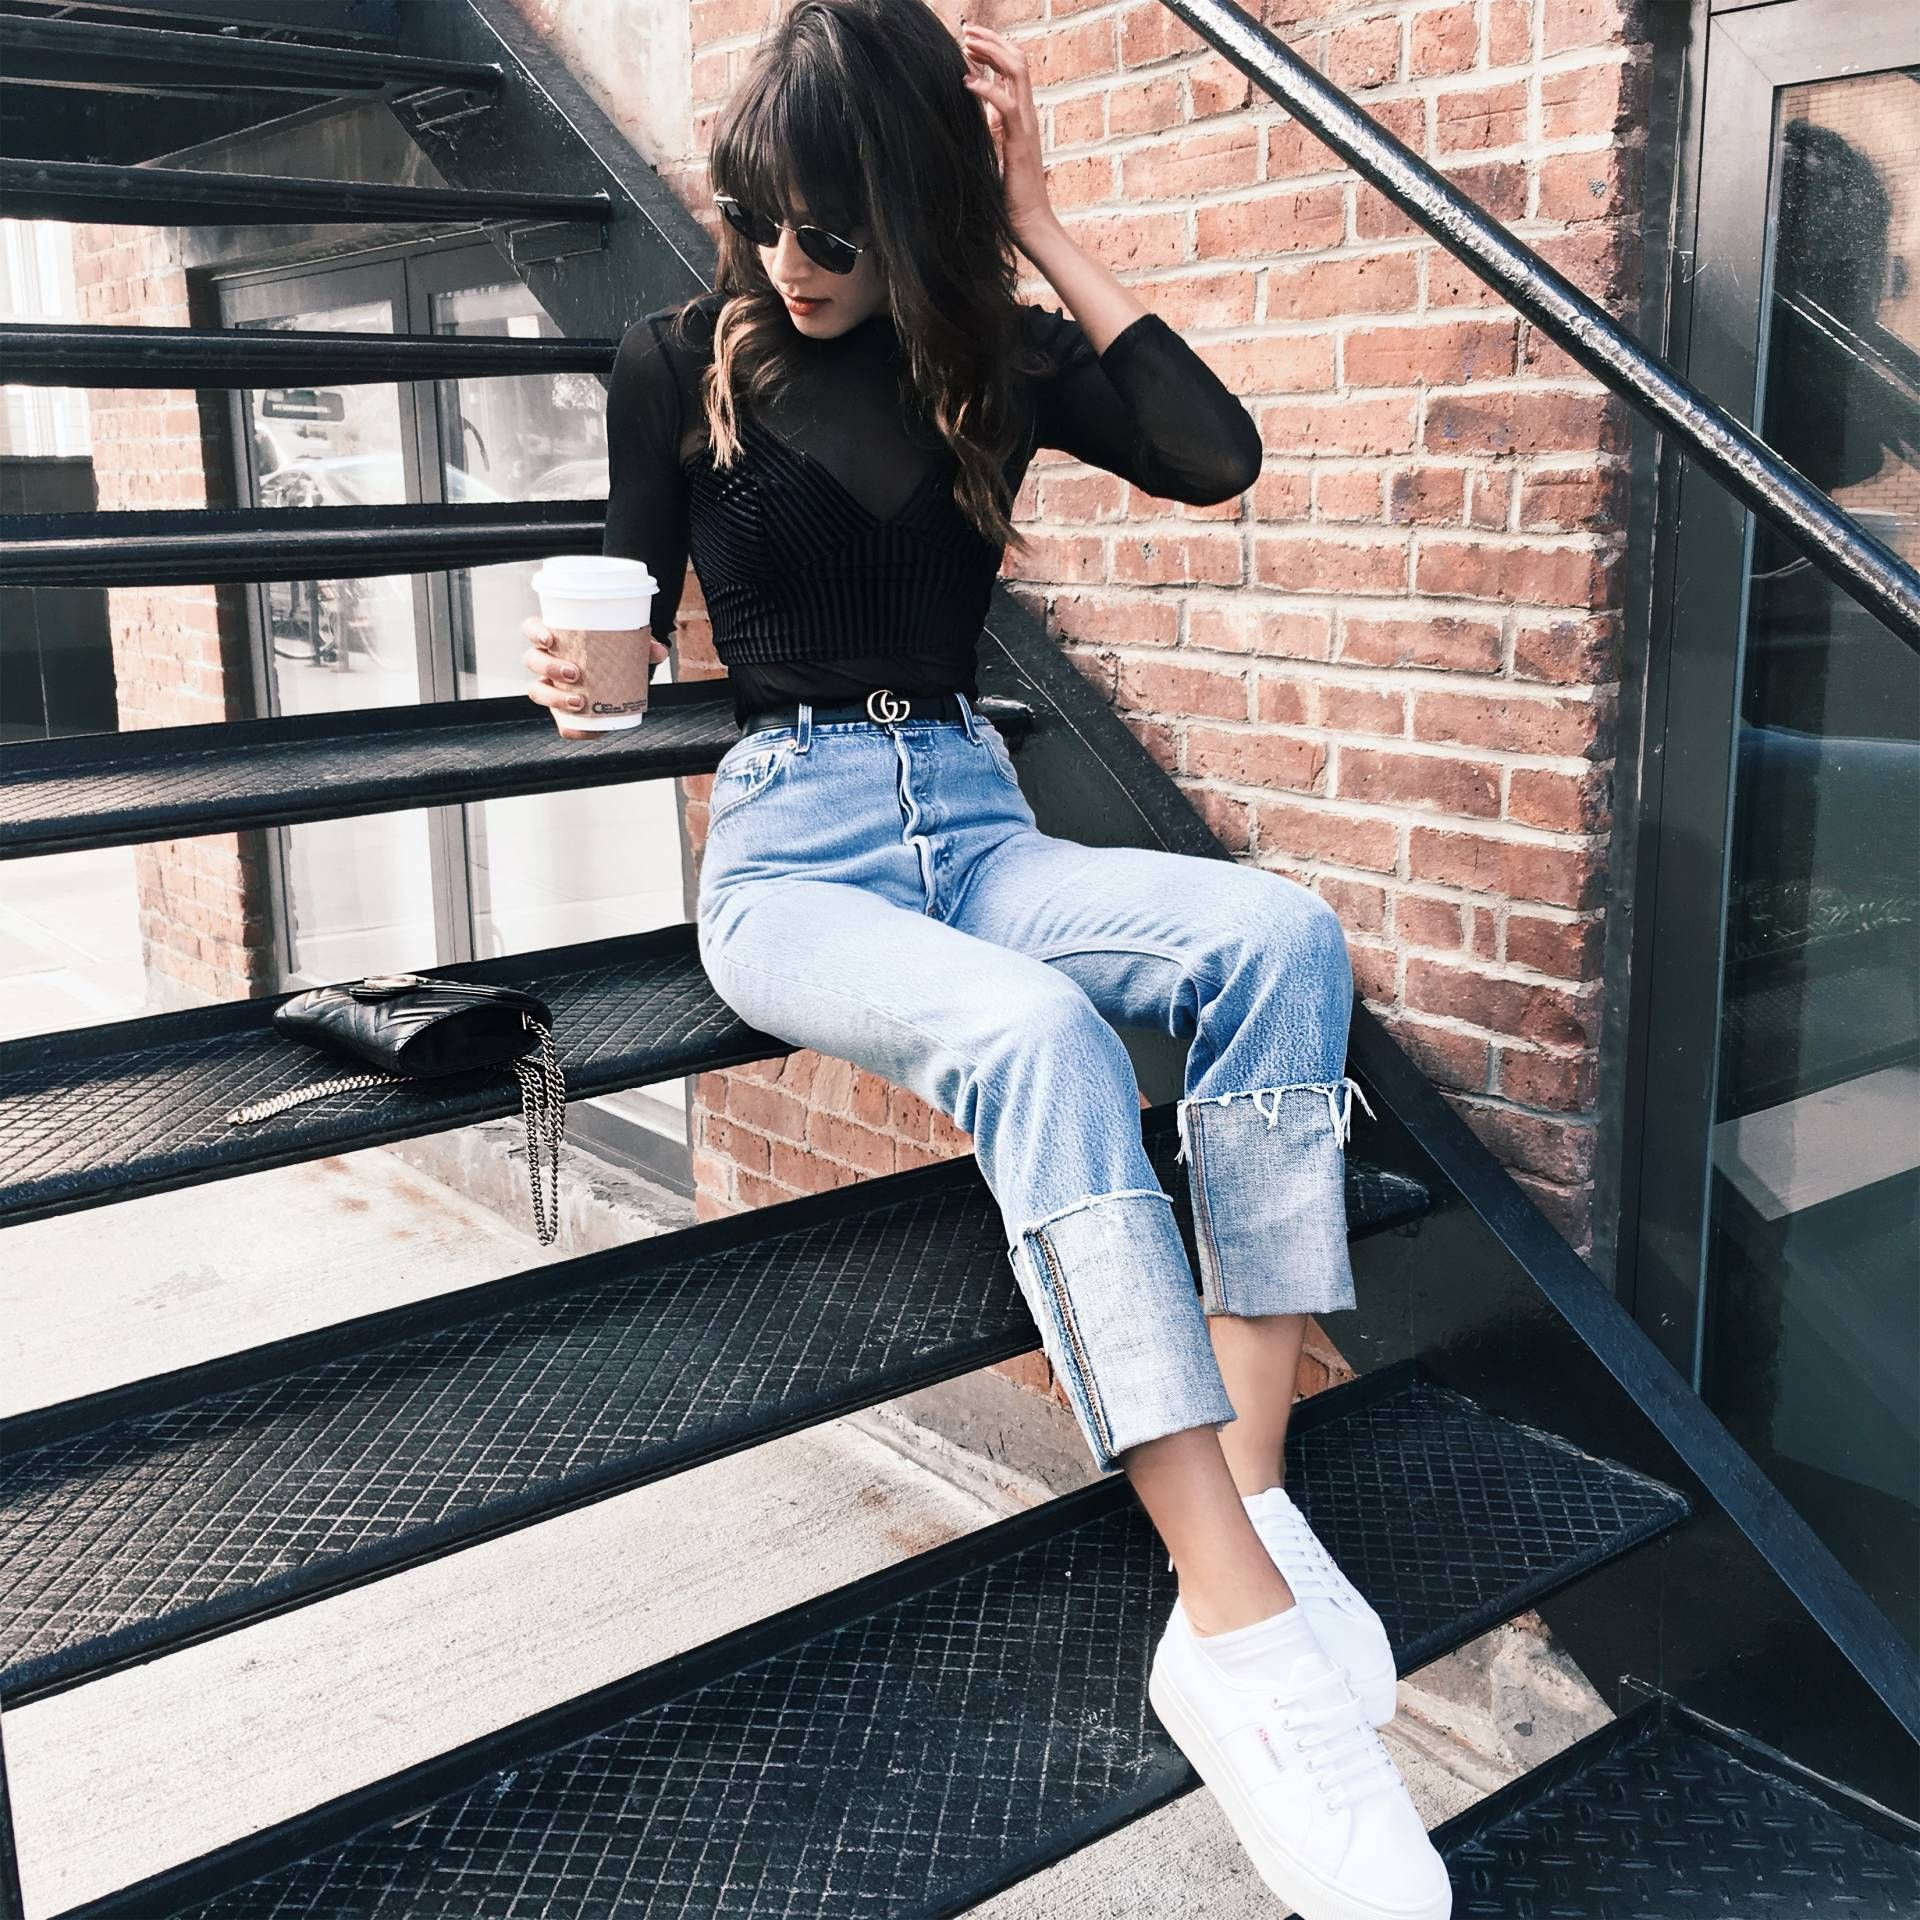 Lives In Levis, Tells Bad Jokes, Still Cannot Properly Curl Hair Long Gone  Is The Girl Who Roamed The Boutique Racks,u2026 View Post